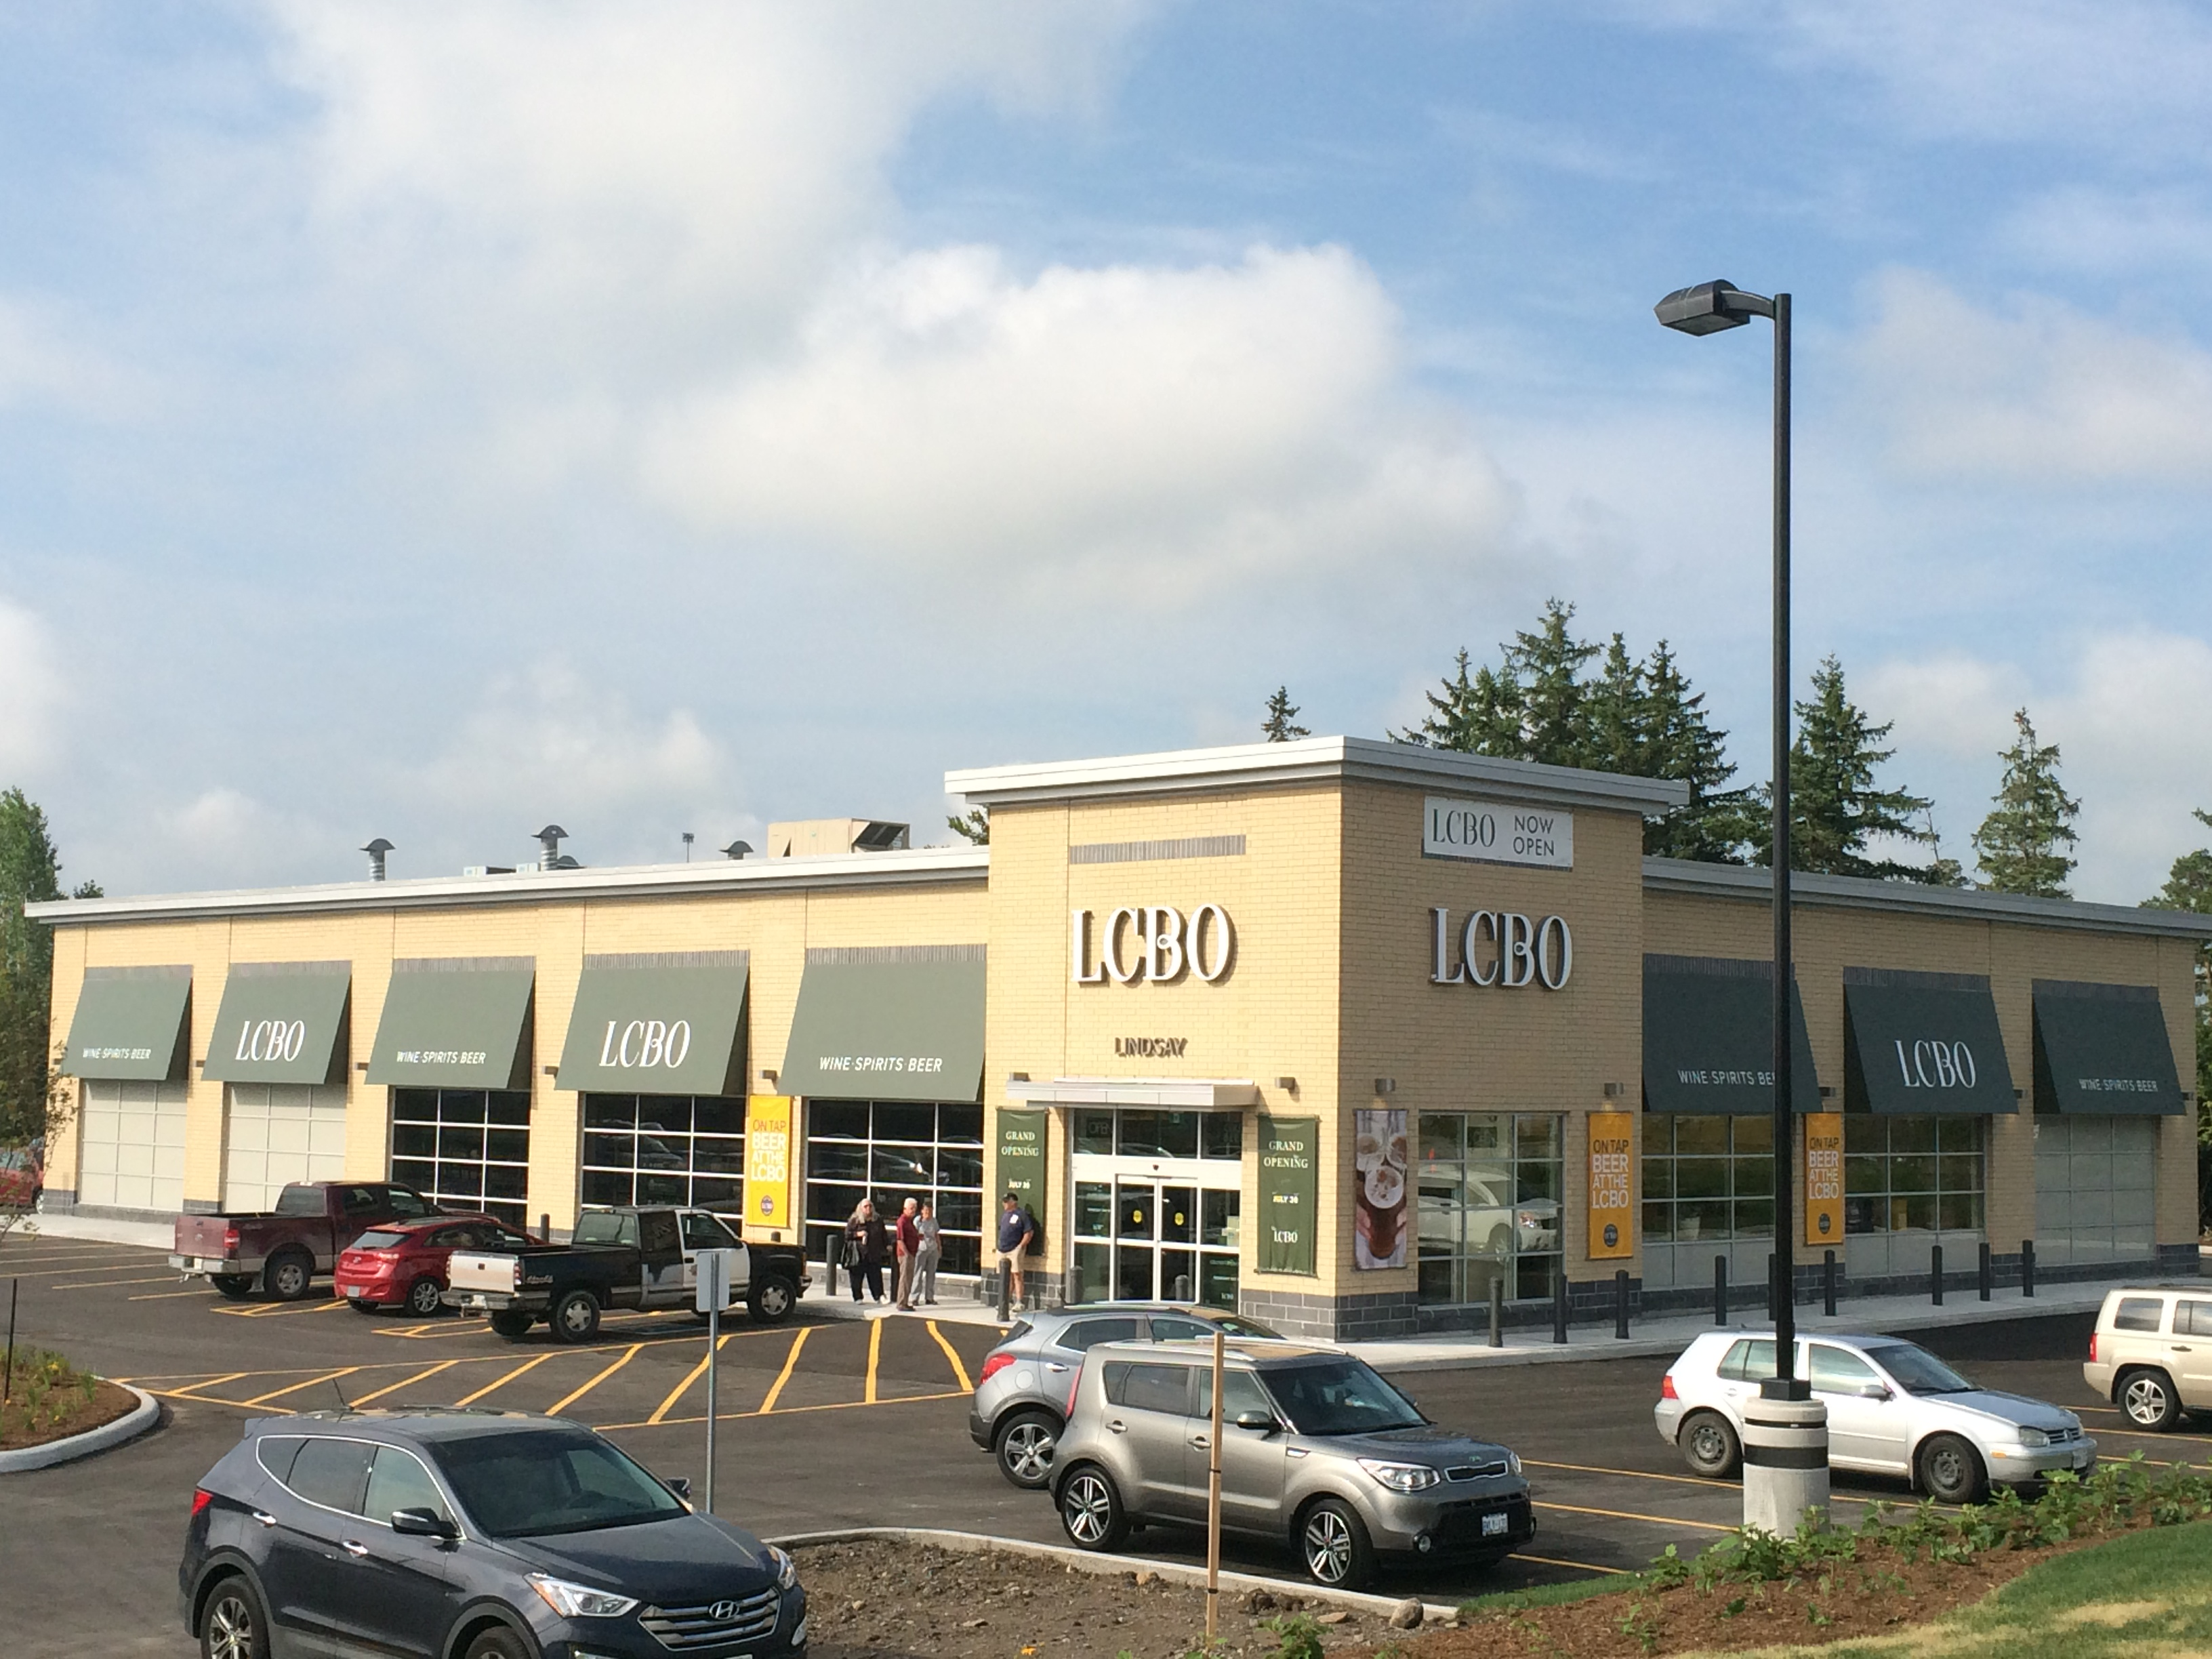 Kent Street - LCBO latest news